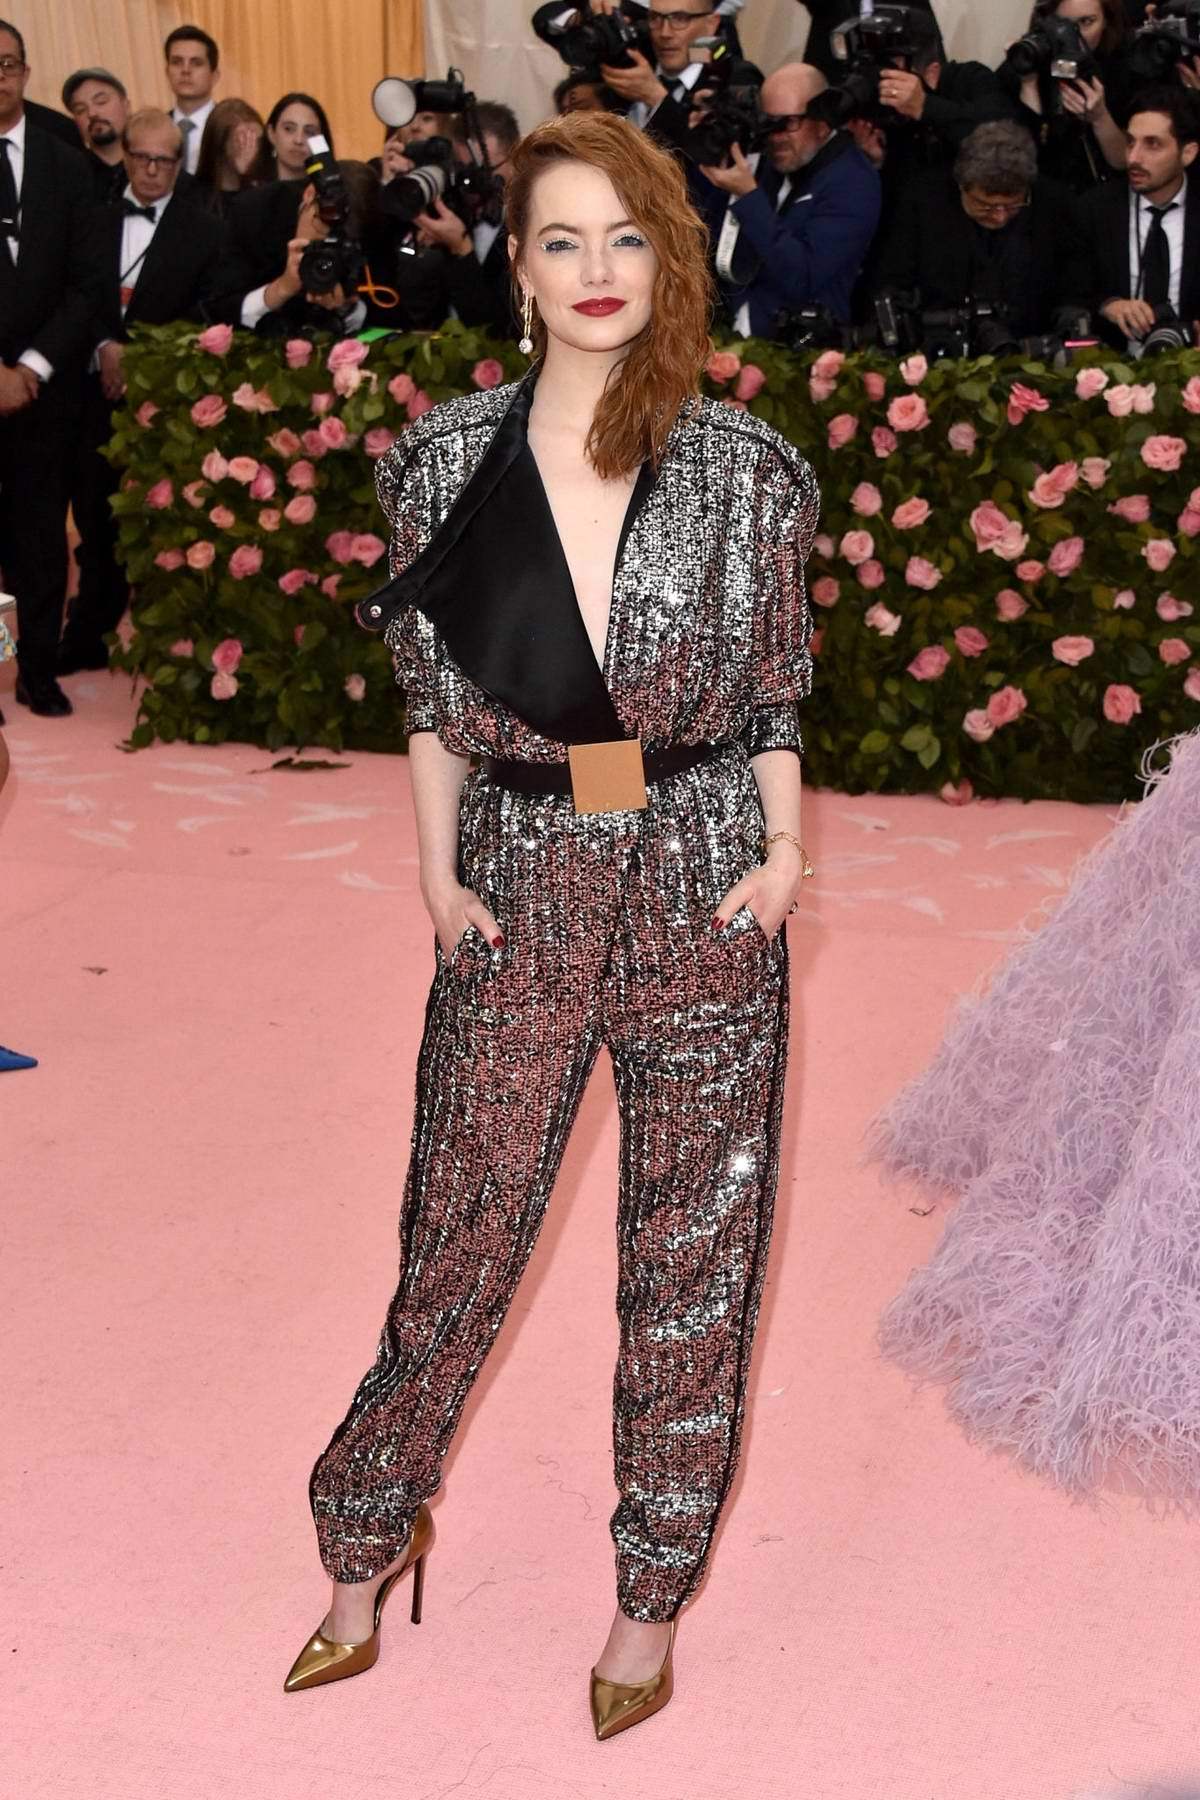 Emma Stone attends The 2019 Met Gala Celebrating Camp: Notes on Fashion in New York City